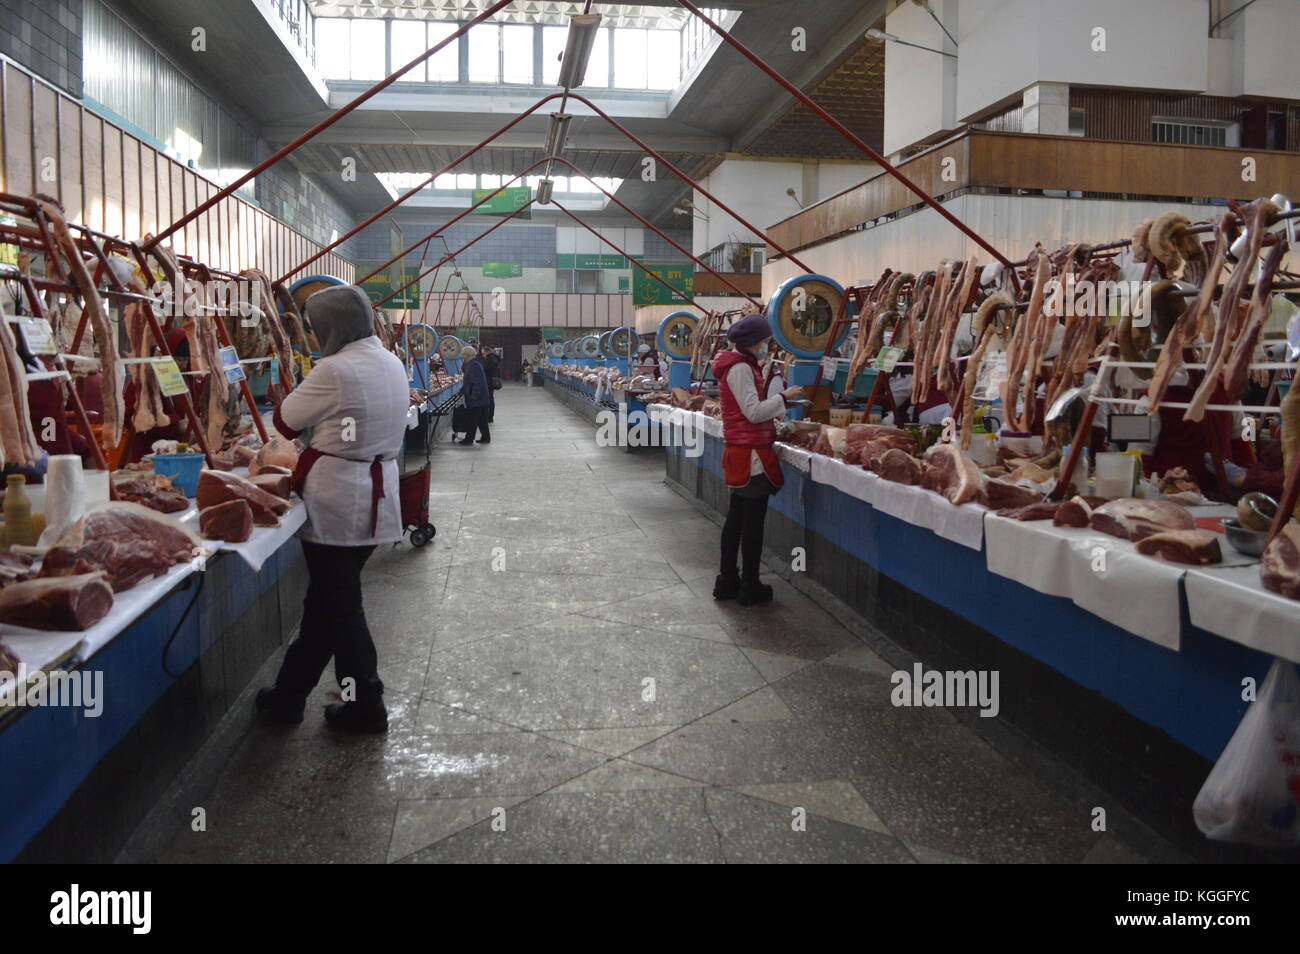 local indoor bazaar in Almaty, Kazakhstan, with red raw meat on display: cow, sheep, camel, pig. Sausages, kolbasa. - Stock Image